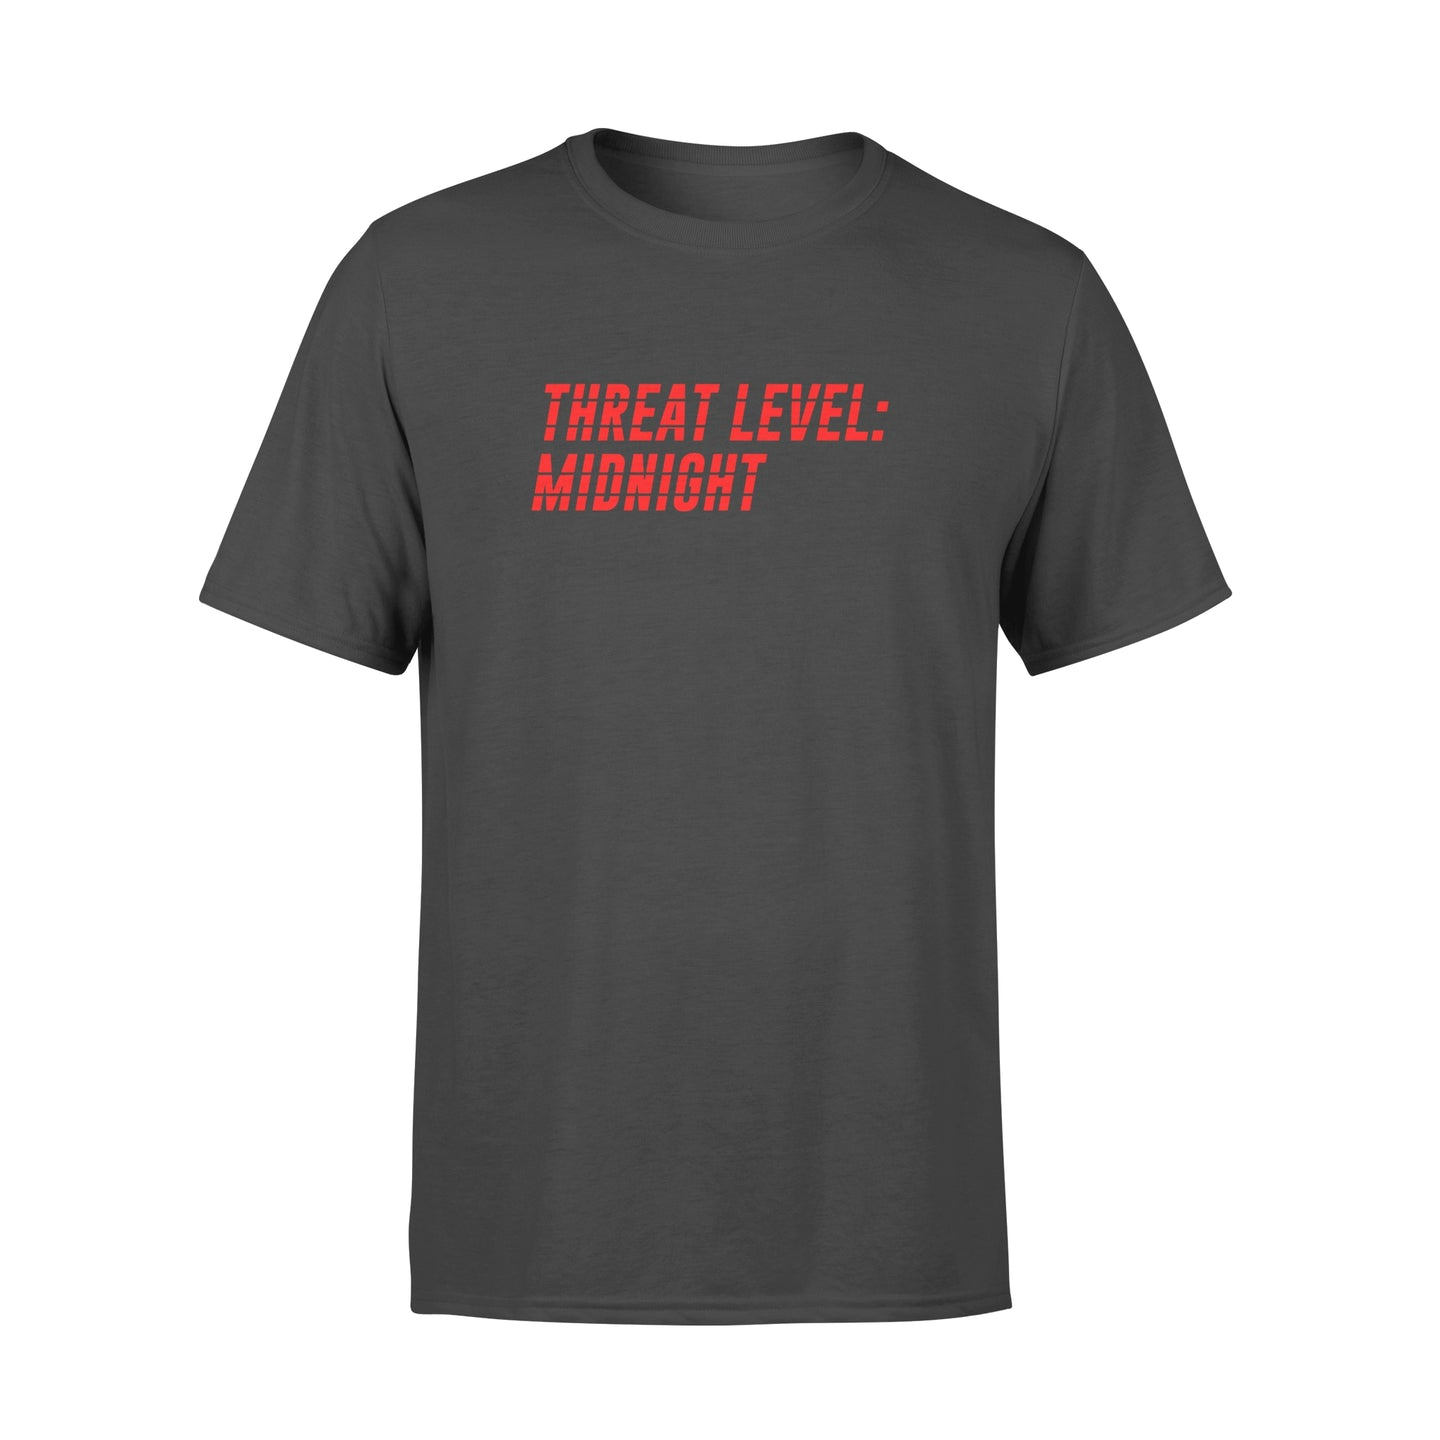 FOAL14 The Office T-Shirt, Threat Level: Midnight, Adult Unisex, Size XS-4XL